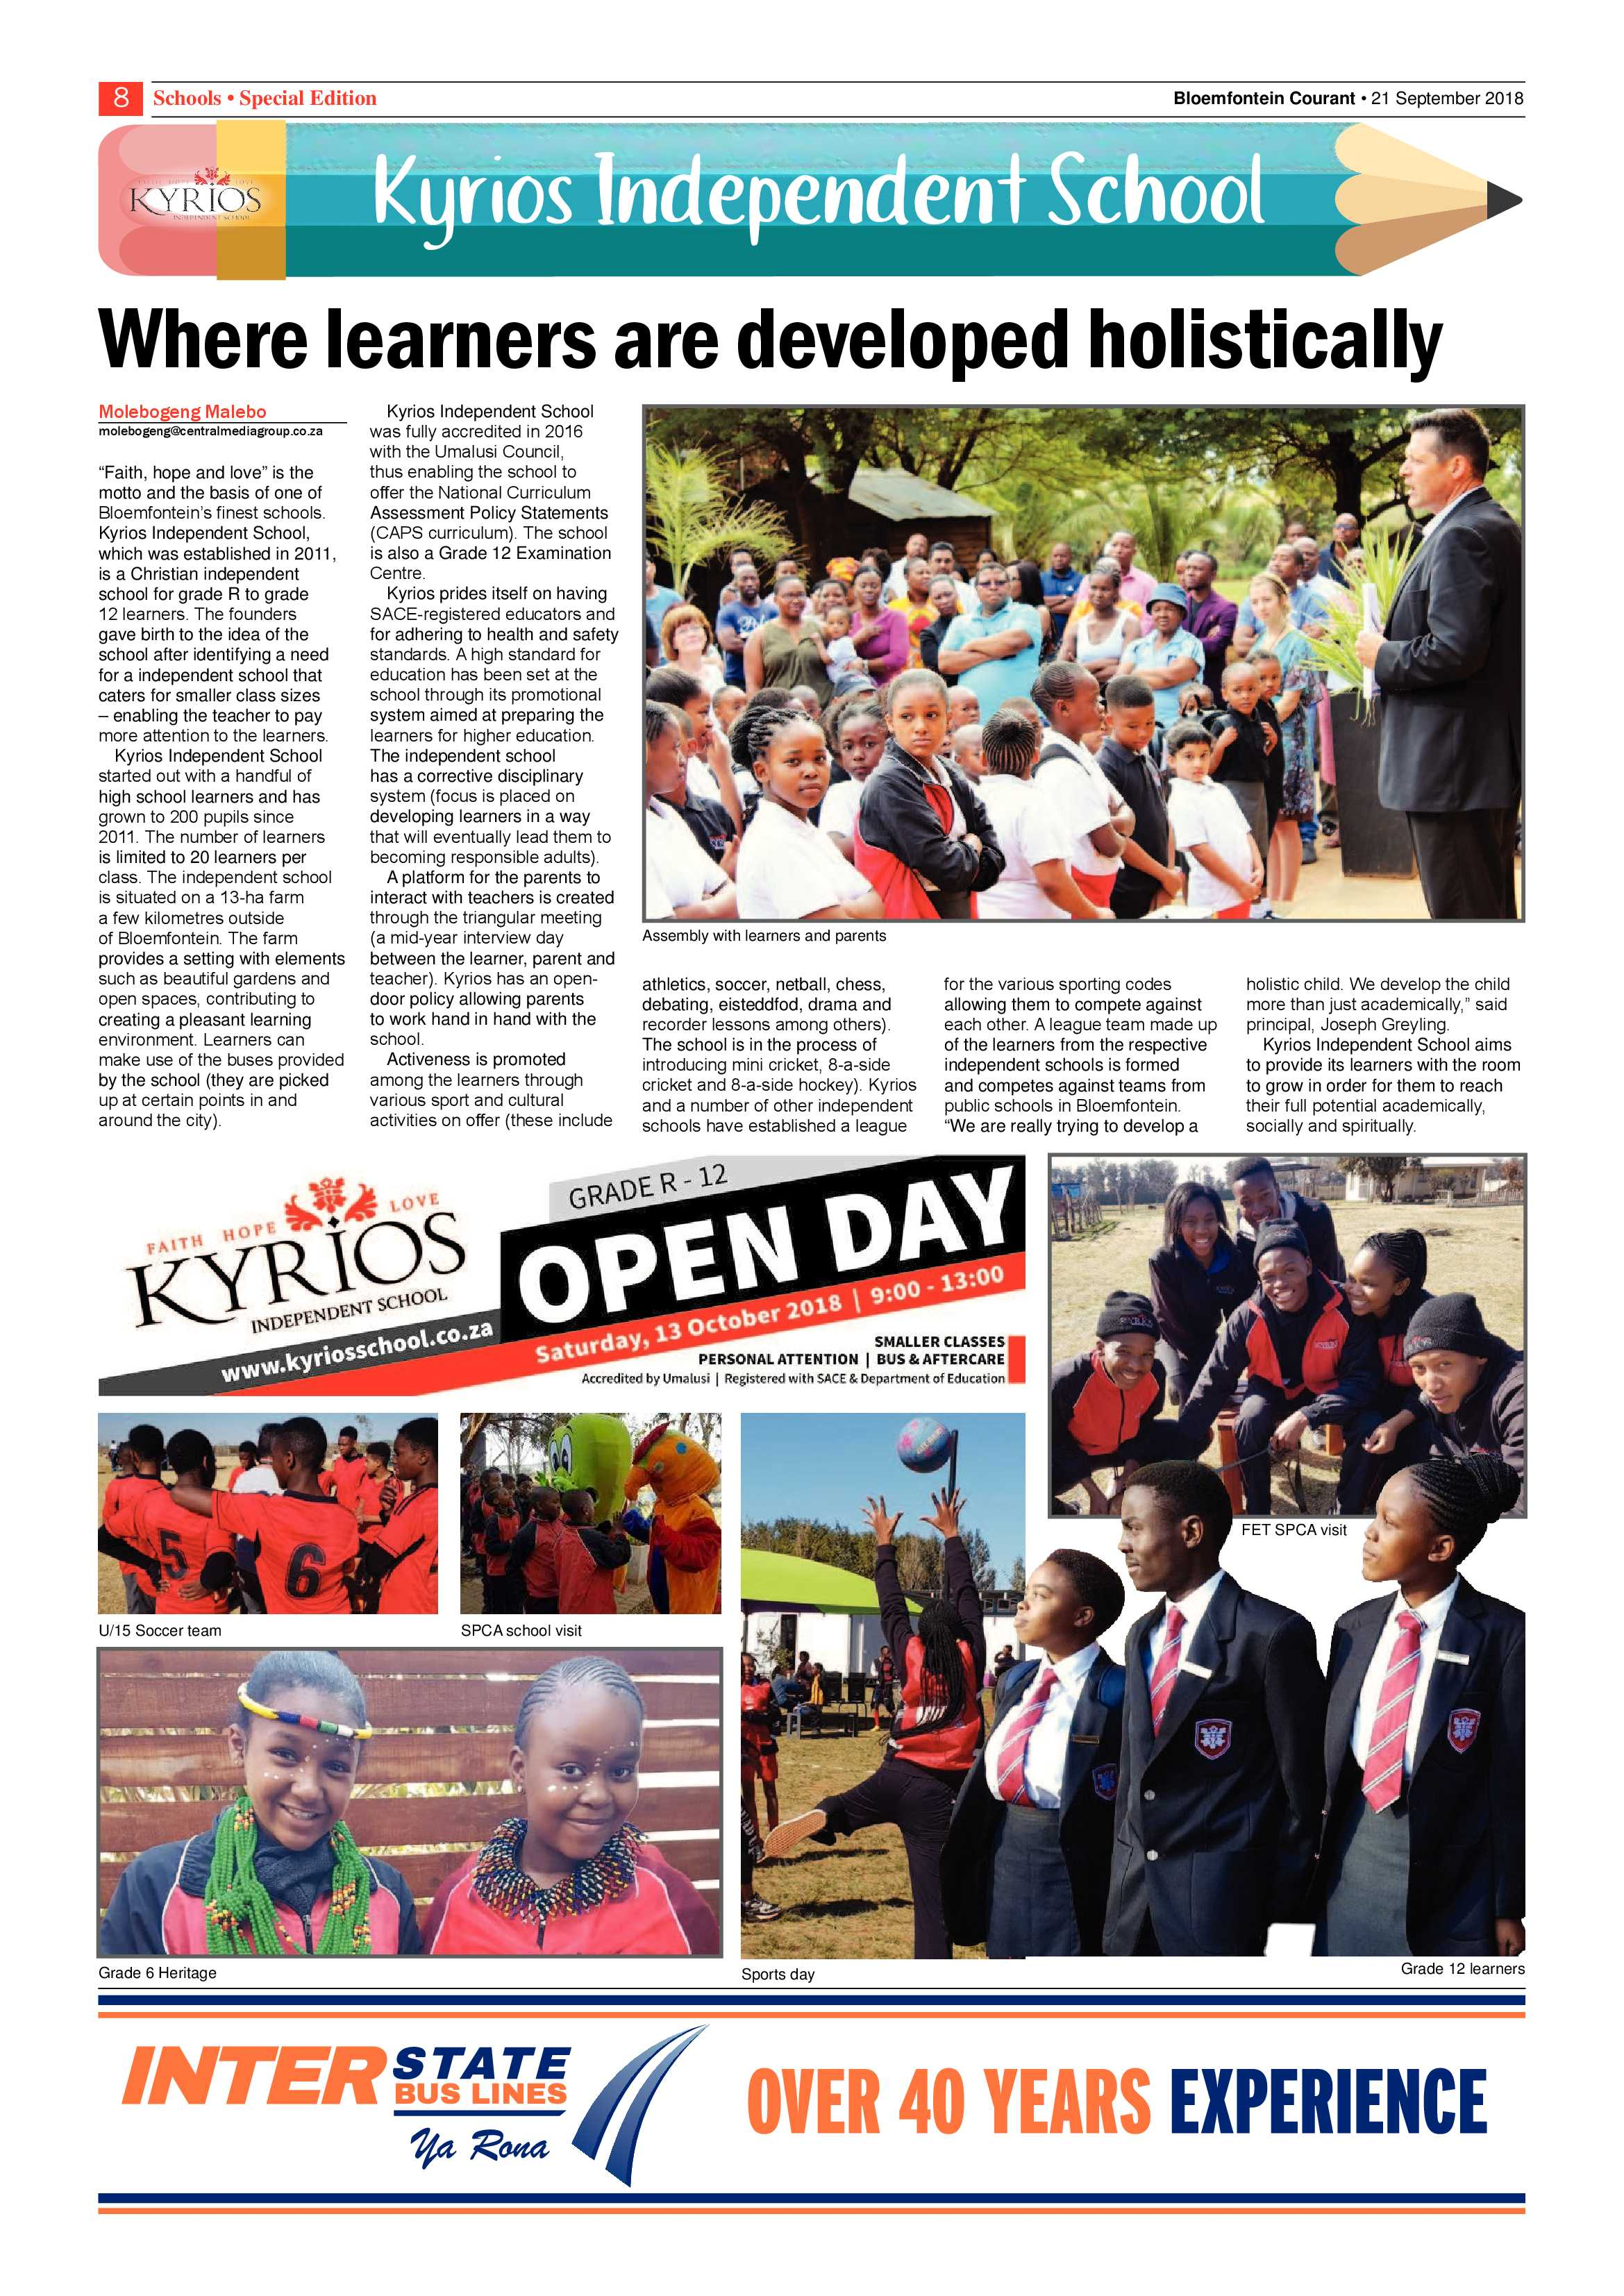 courant-schools-edition-20-september-2018-epapers-page-7